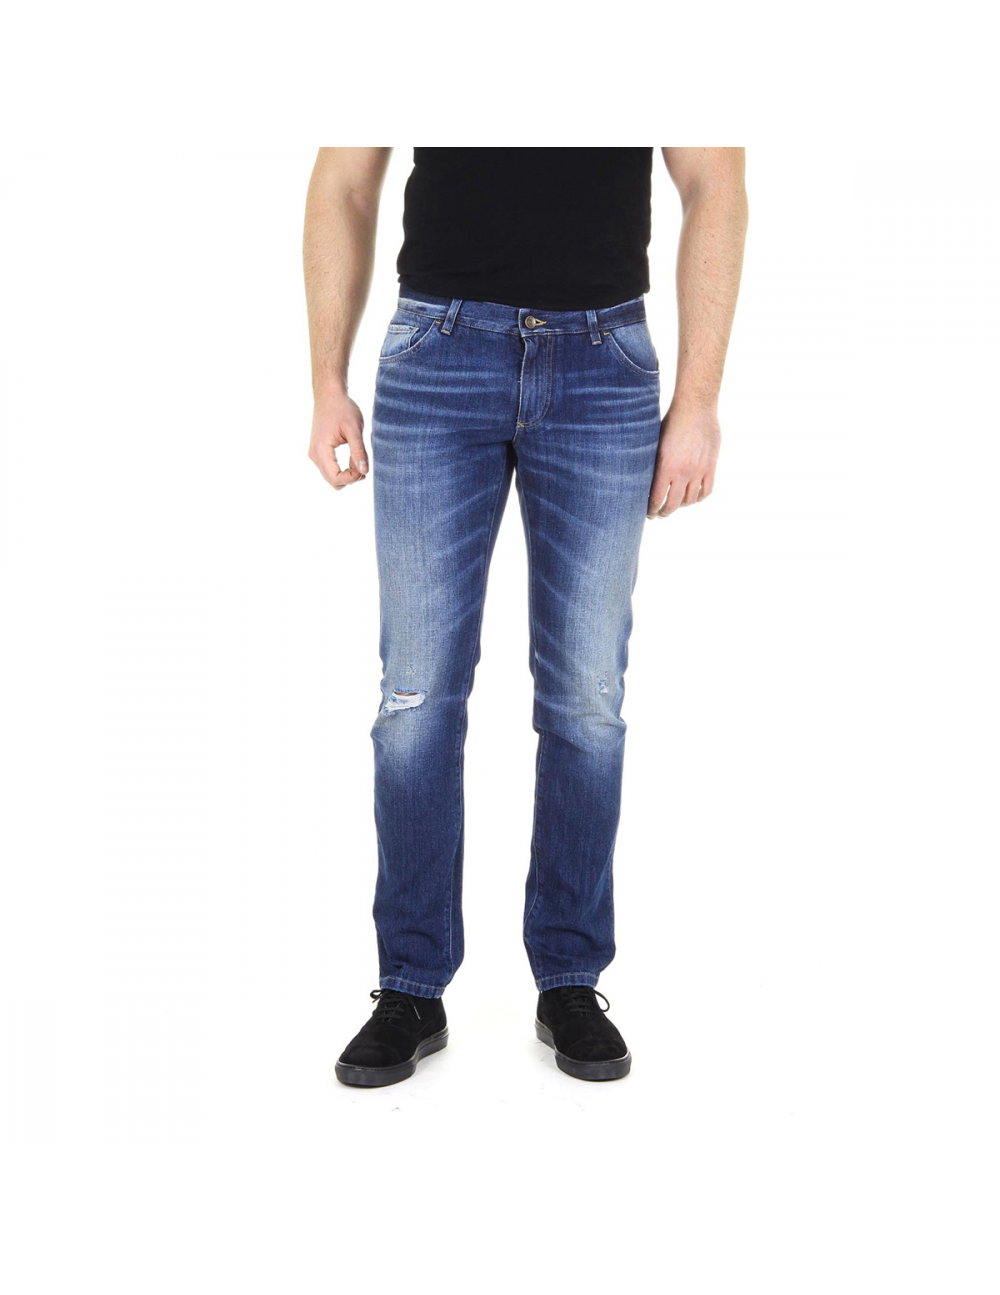 So So Simple Dolce & Gabbana Men Jeans